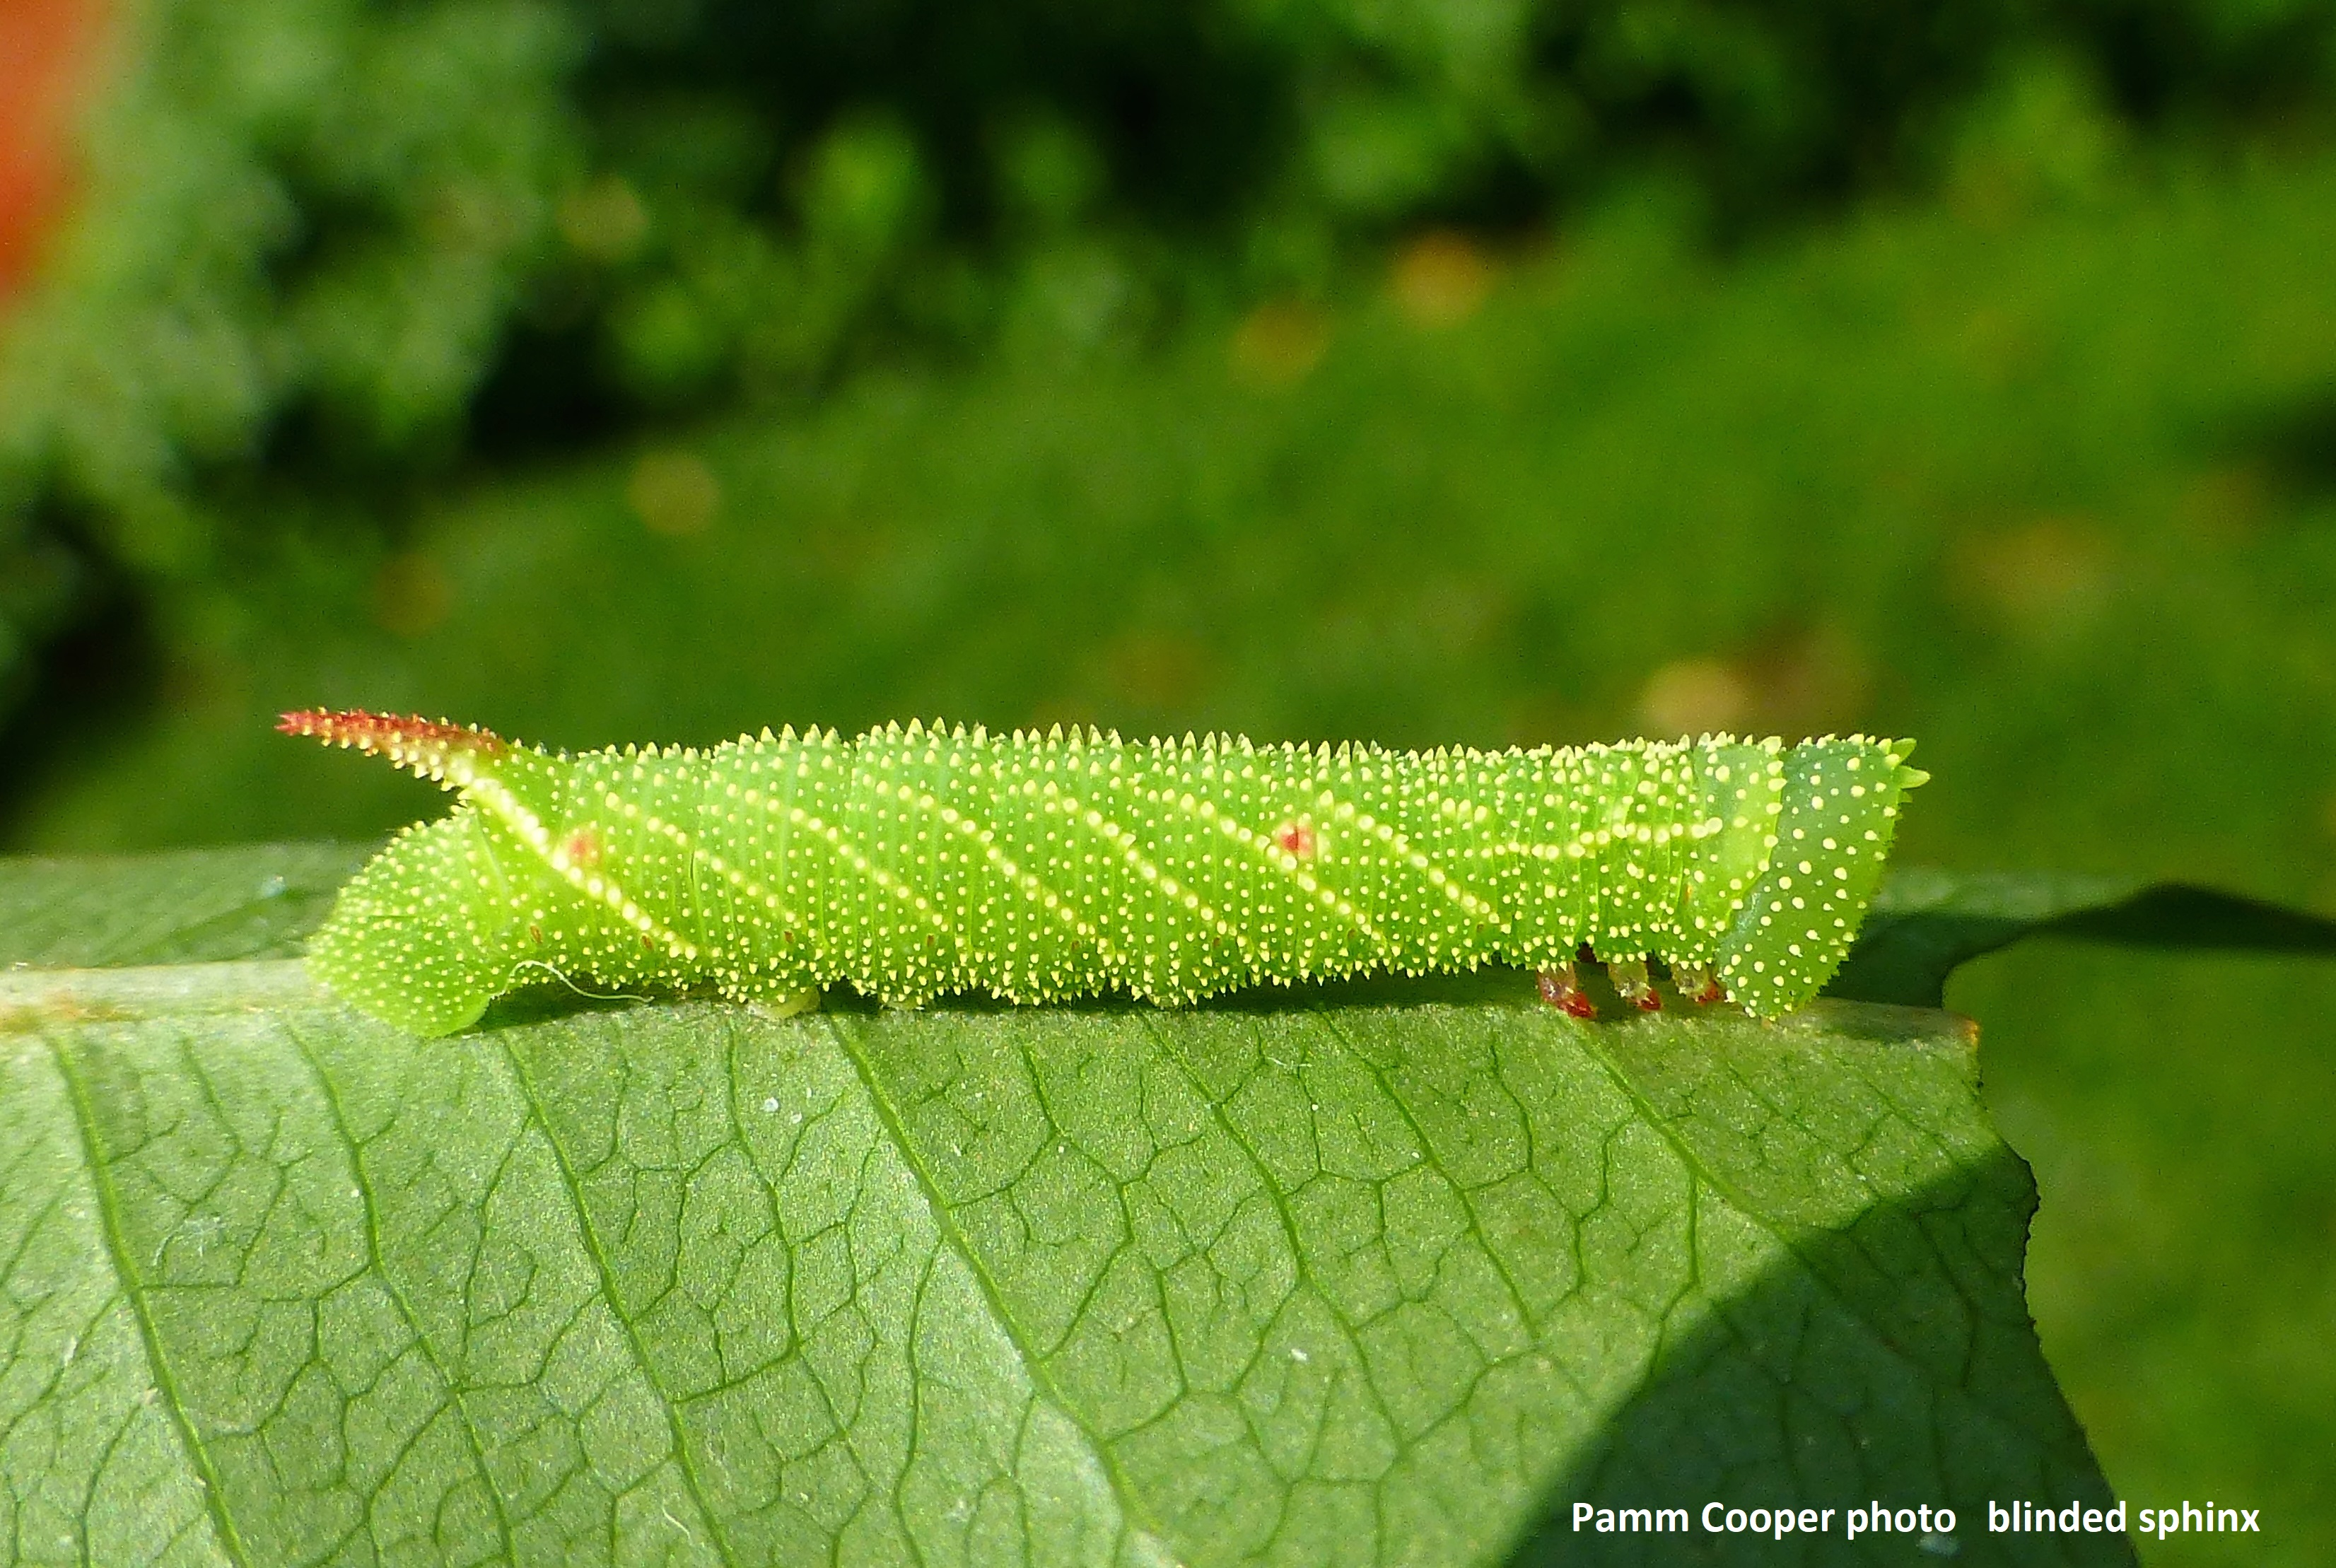 early instar blinded sphinx July 4 2018 Pamm Cooper photo